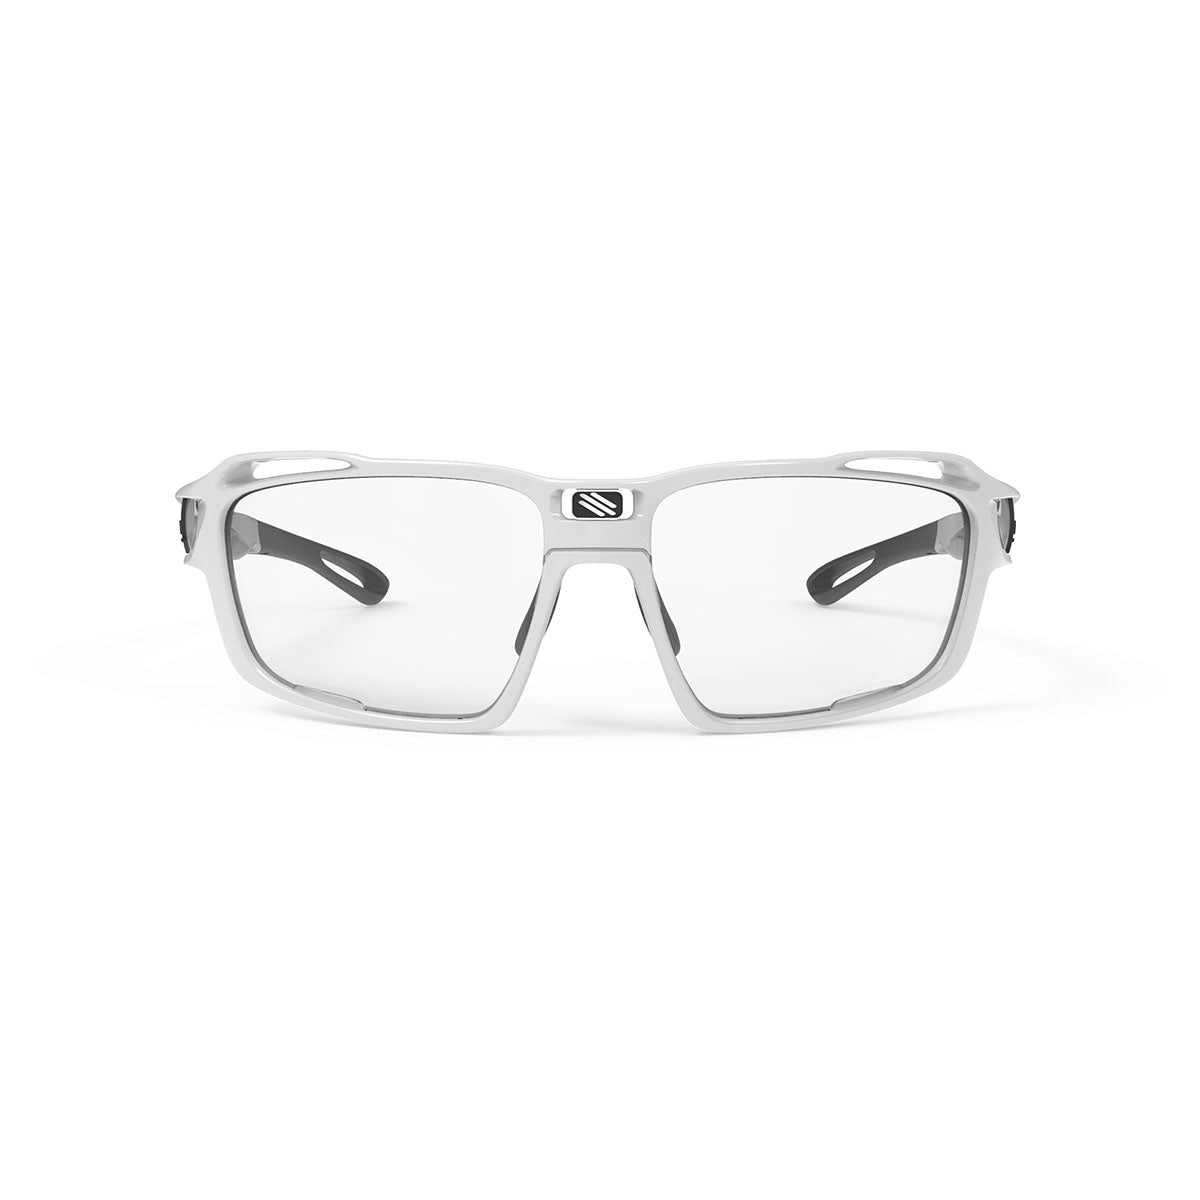 Rudy Project - Sintryx - frame color: White Gloss - lens color: ImpactX-2 Photochromic Clear to Black - Bumper Color:  - photo angle: Front View Variant Hover Image